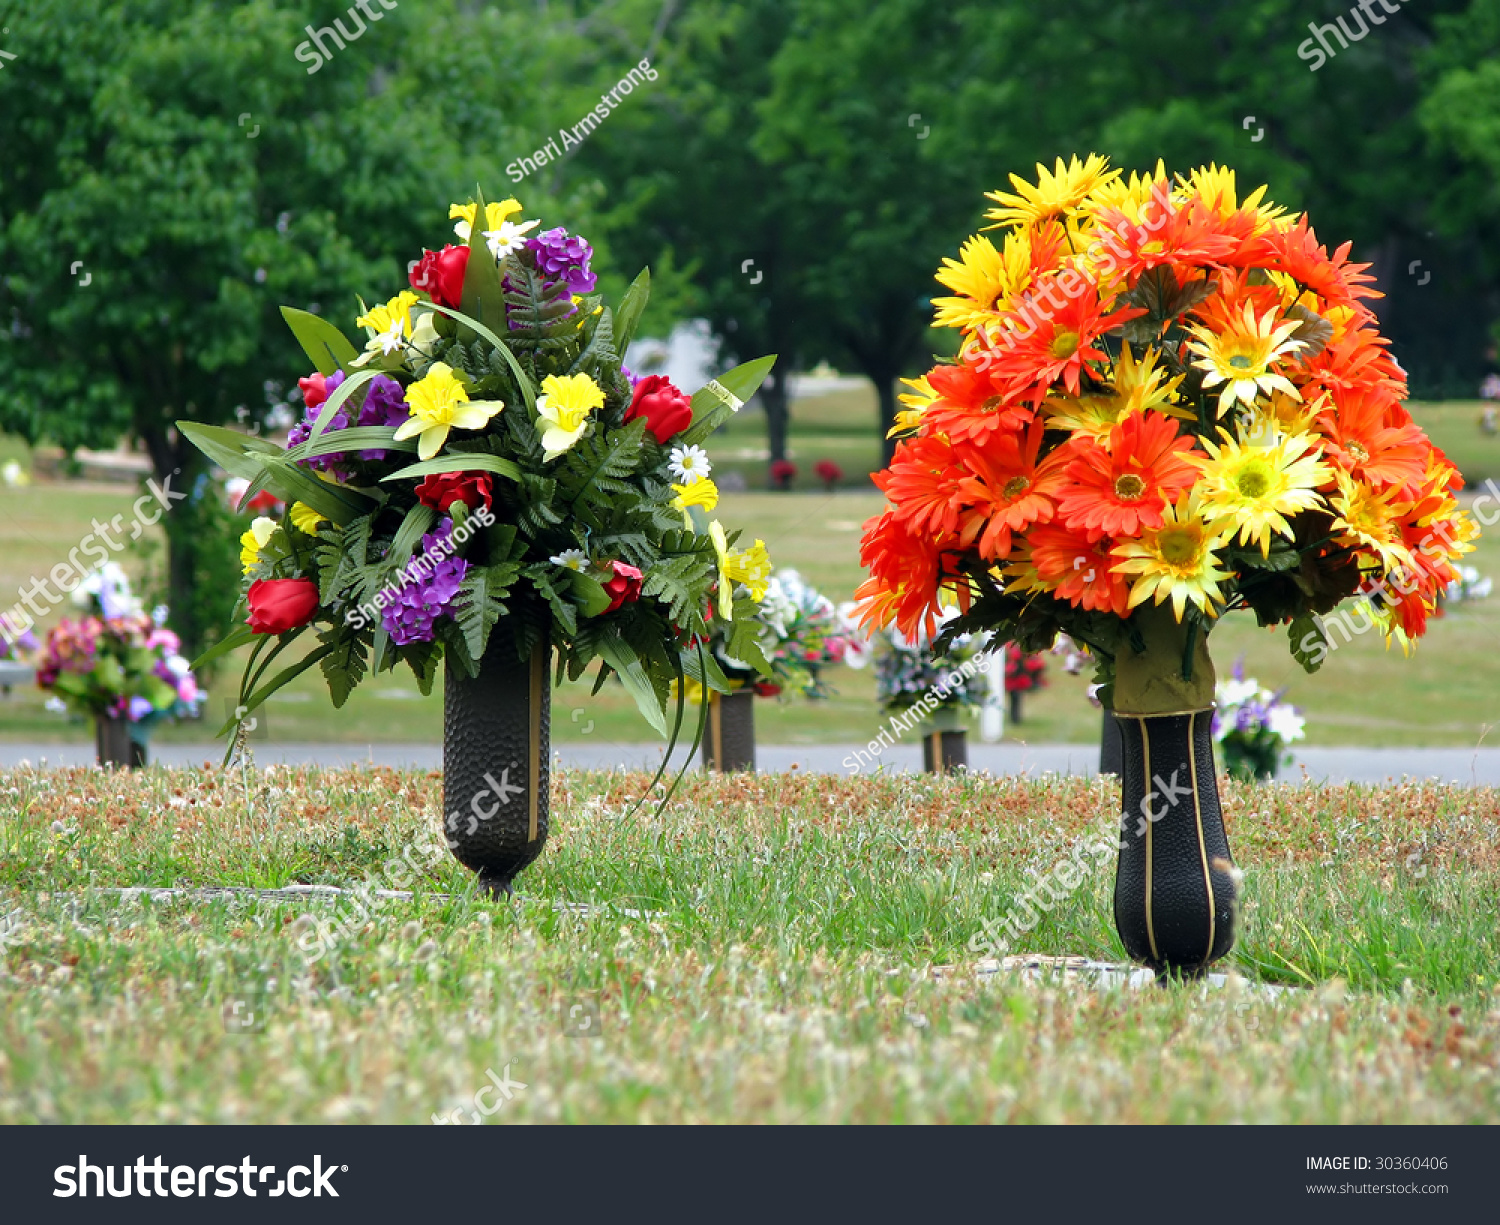 Colorful Silk Flower Vases In Summer Cemetery Stock Photo 30360406 Shutterstock